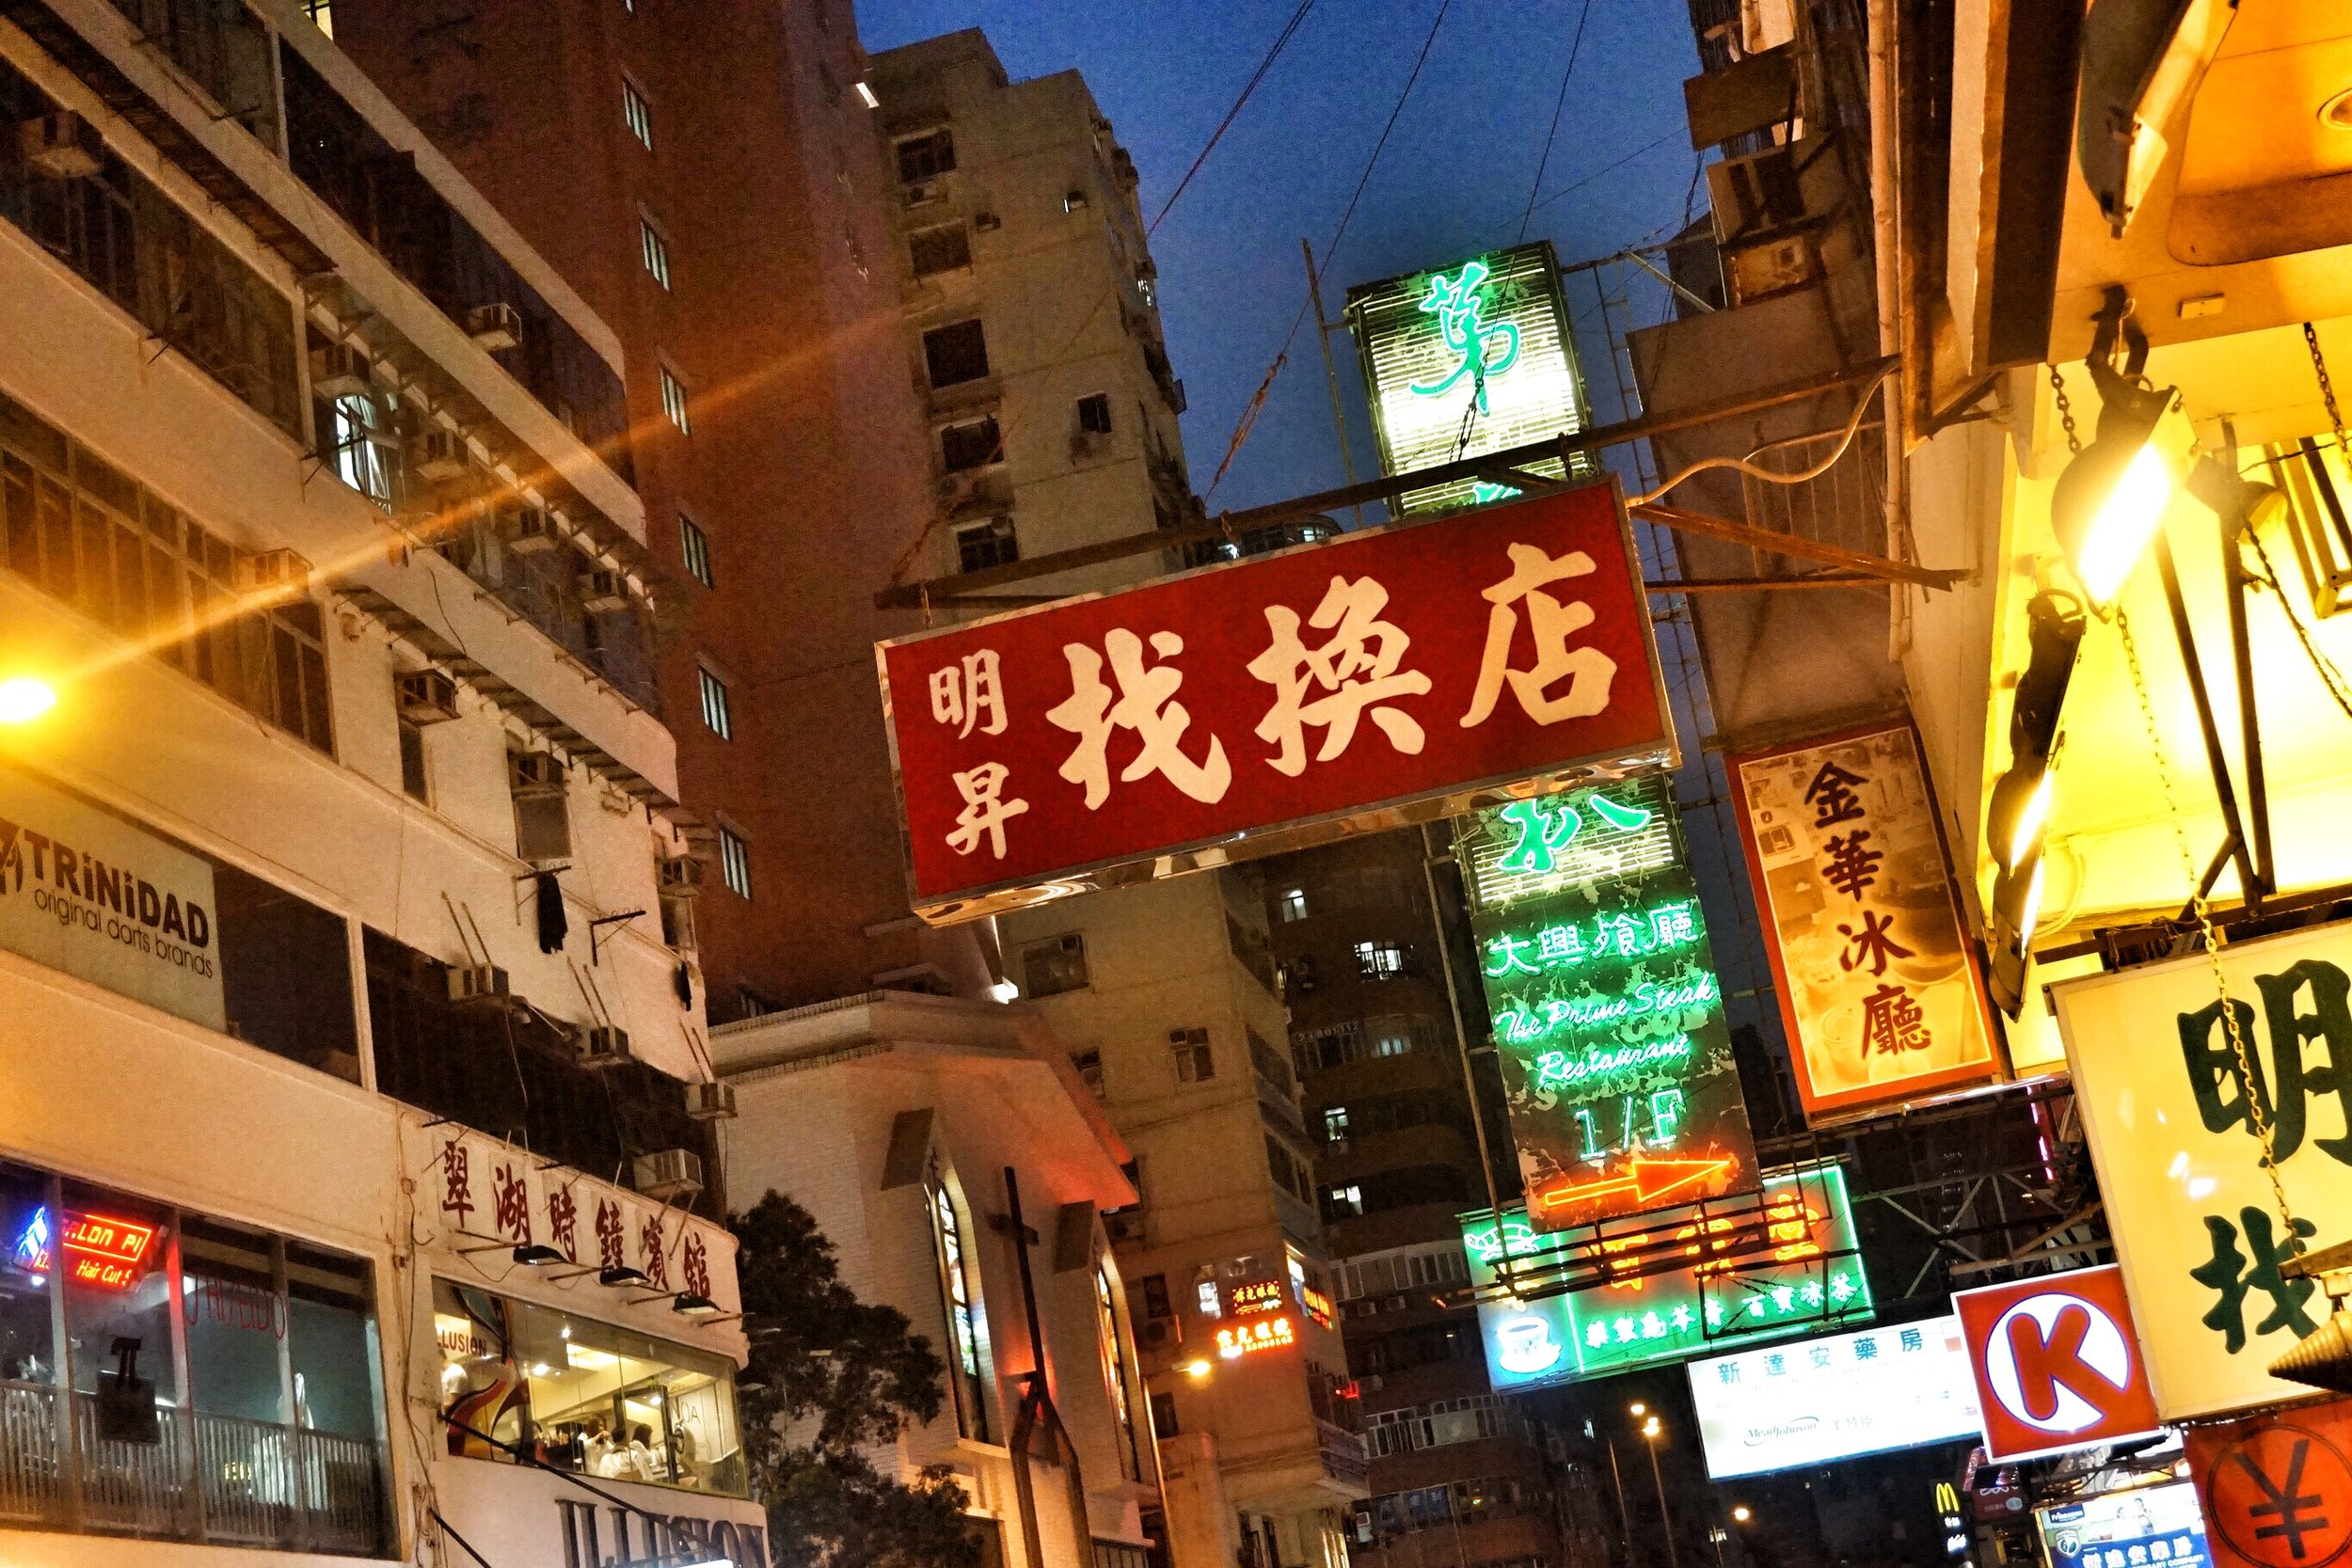 At night Hong Kong truly comes to life and the best way to see it is on a walking tour of the city. A night tour is a great way to soak up the atmosphere of the city at night in the comfort of a small group tour environment.